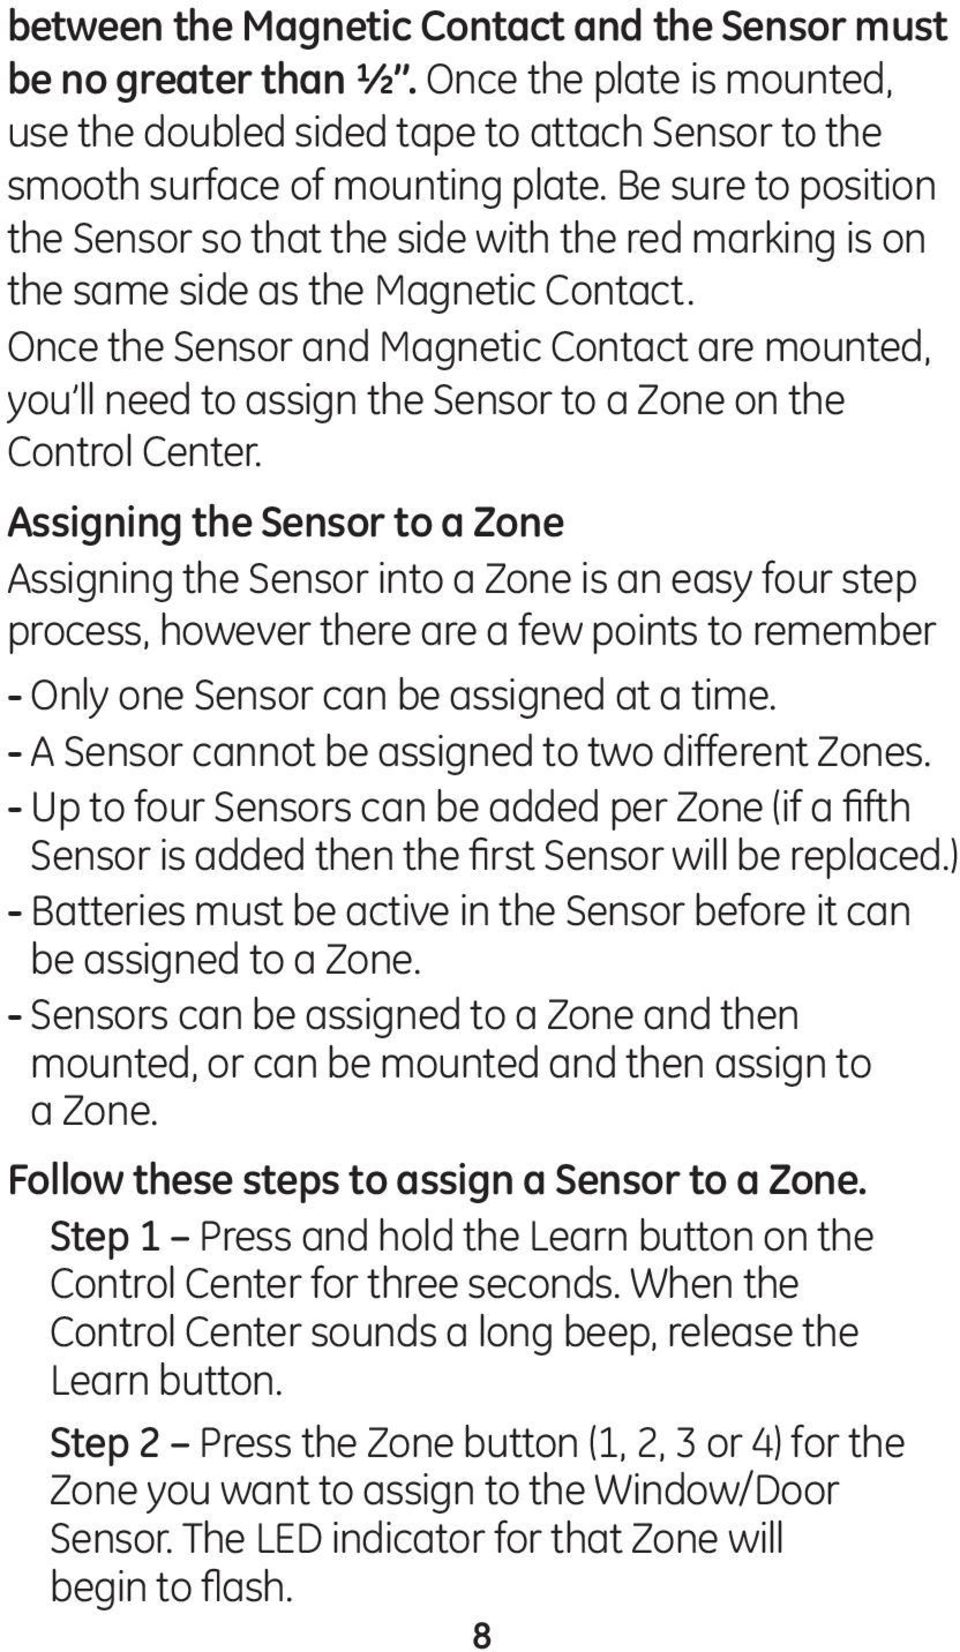 Once the Sensor and Magnetic Contact are mounted, you ll need to assign the Sensor to a Zone on the Control Center.